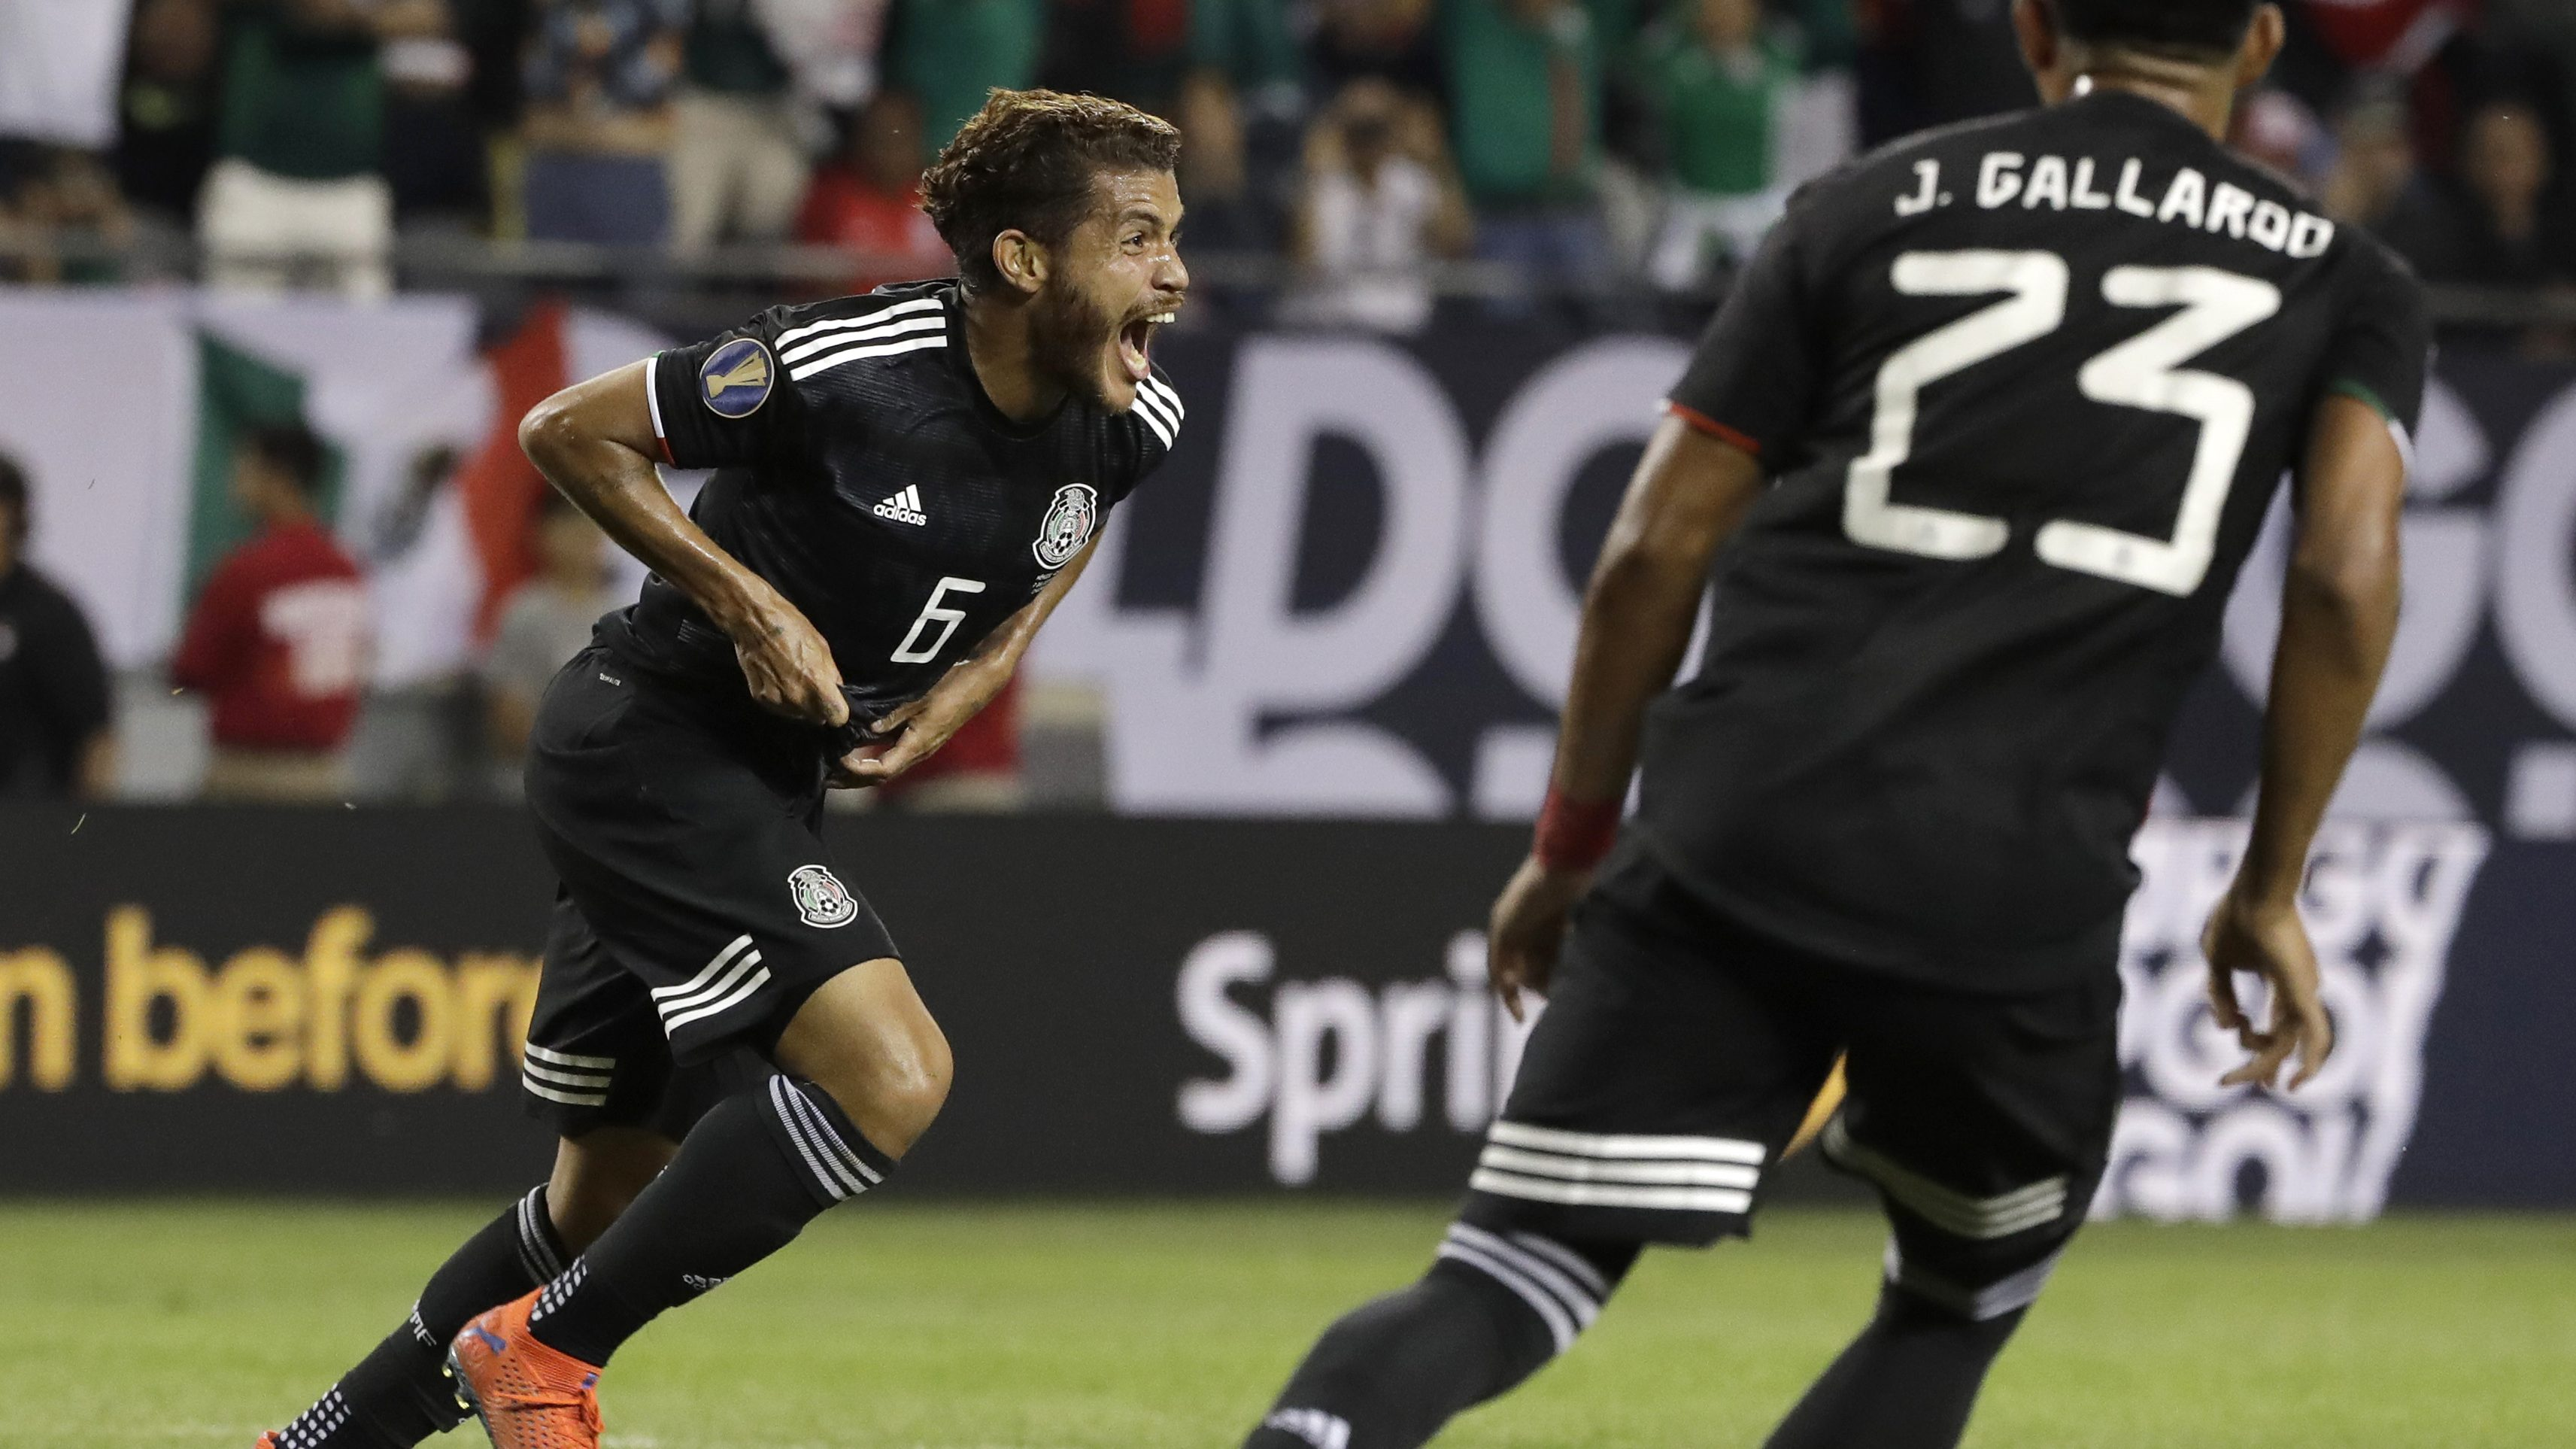 Usmnt Wastes Early Chances Falls To Mexico In Gold Cup Final